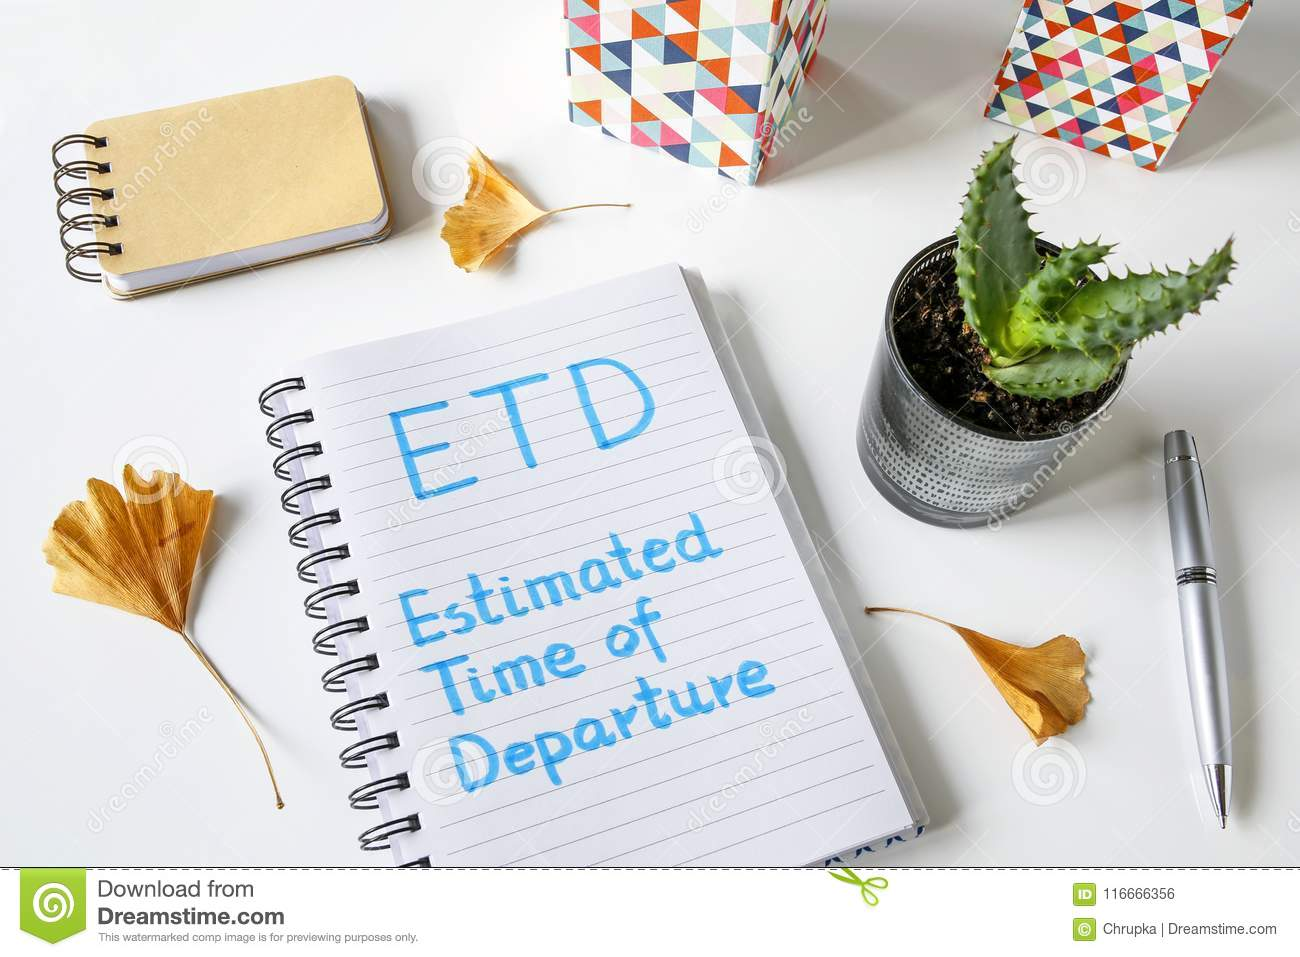 Etd Estimated Time Of Departure Written In Notebook Stock Photo Image Of Definition Office 116666356